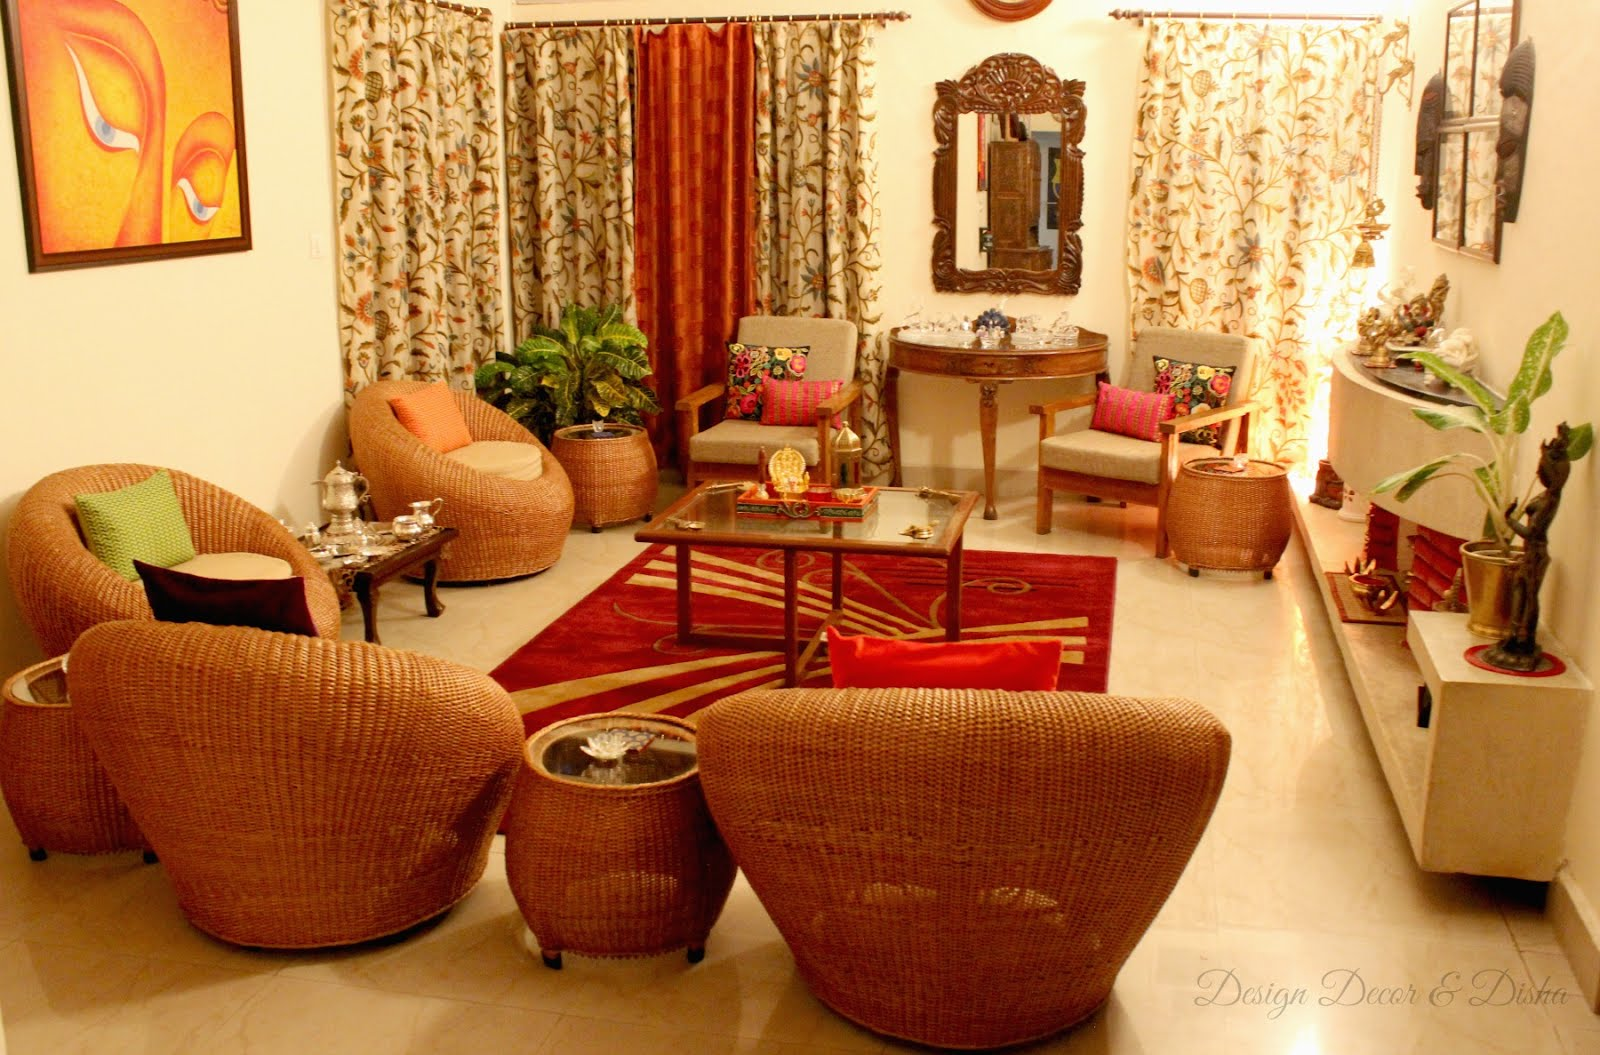 Design decor disha an indian design decor blog home for Ethnic home decor